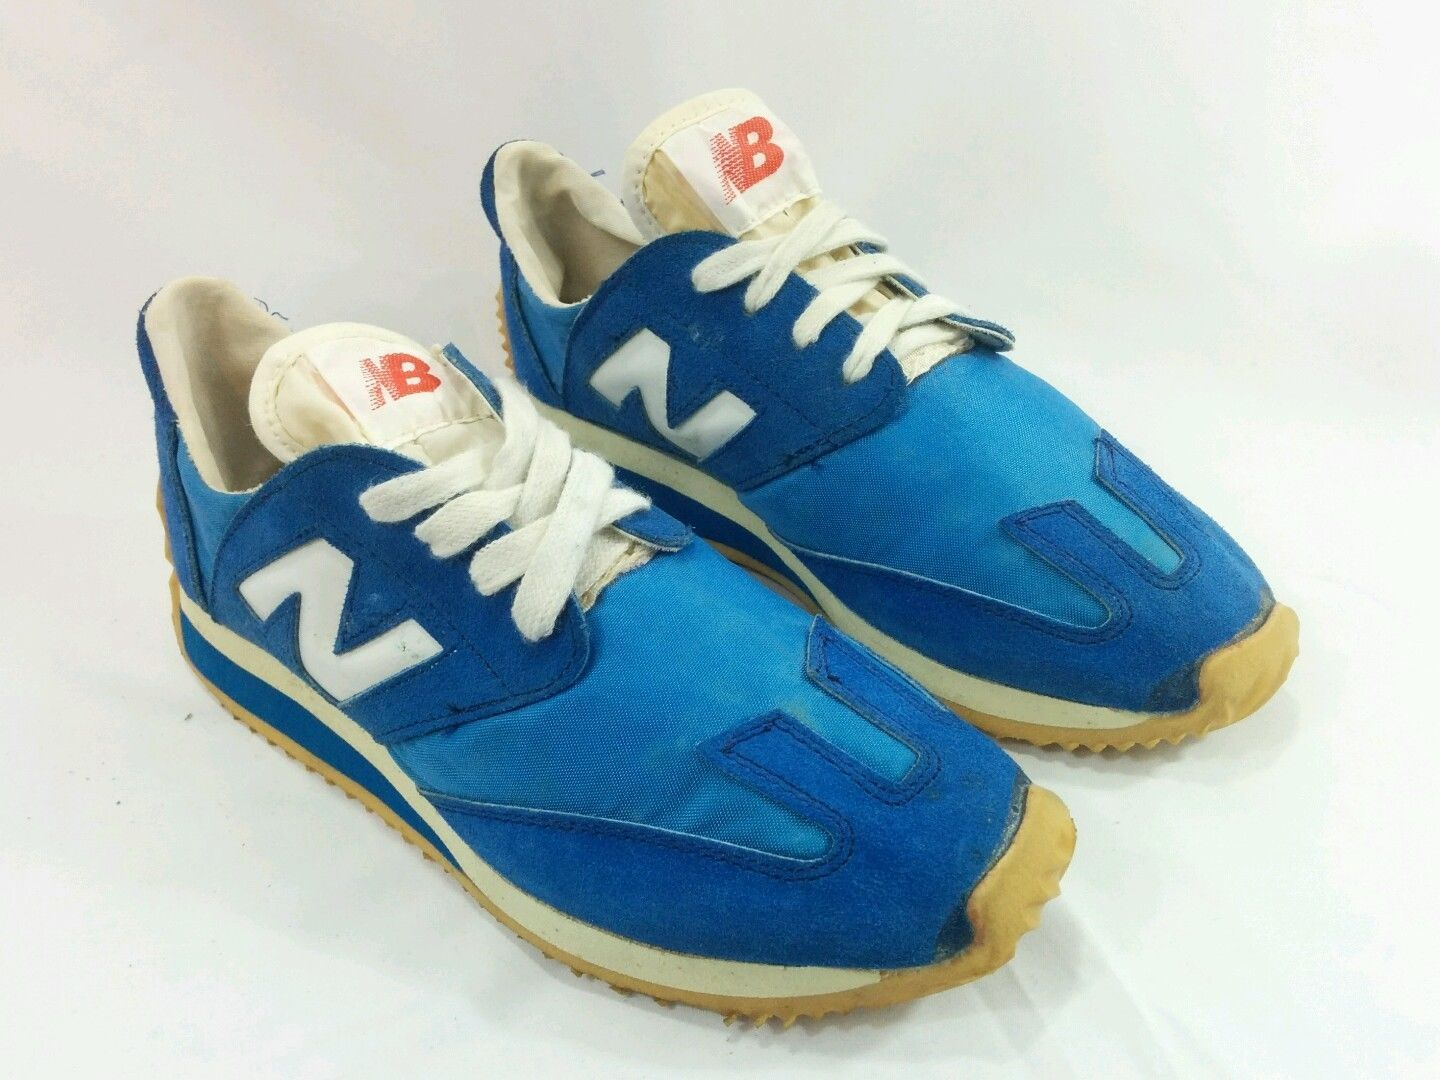 NWOB Vintage New Balance 320 Running Shoes Made in USA 6 1/2 A